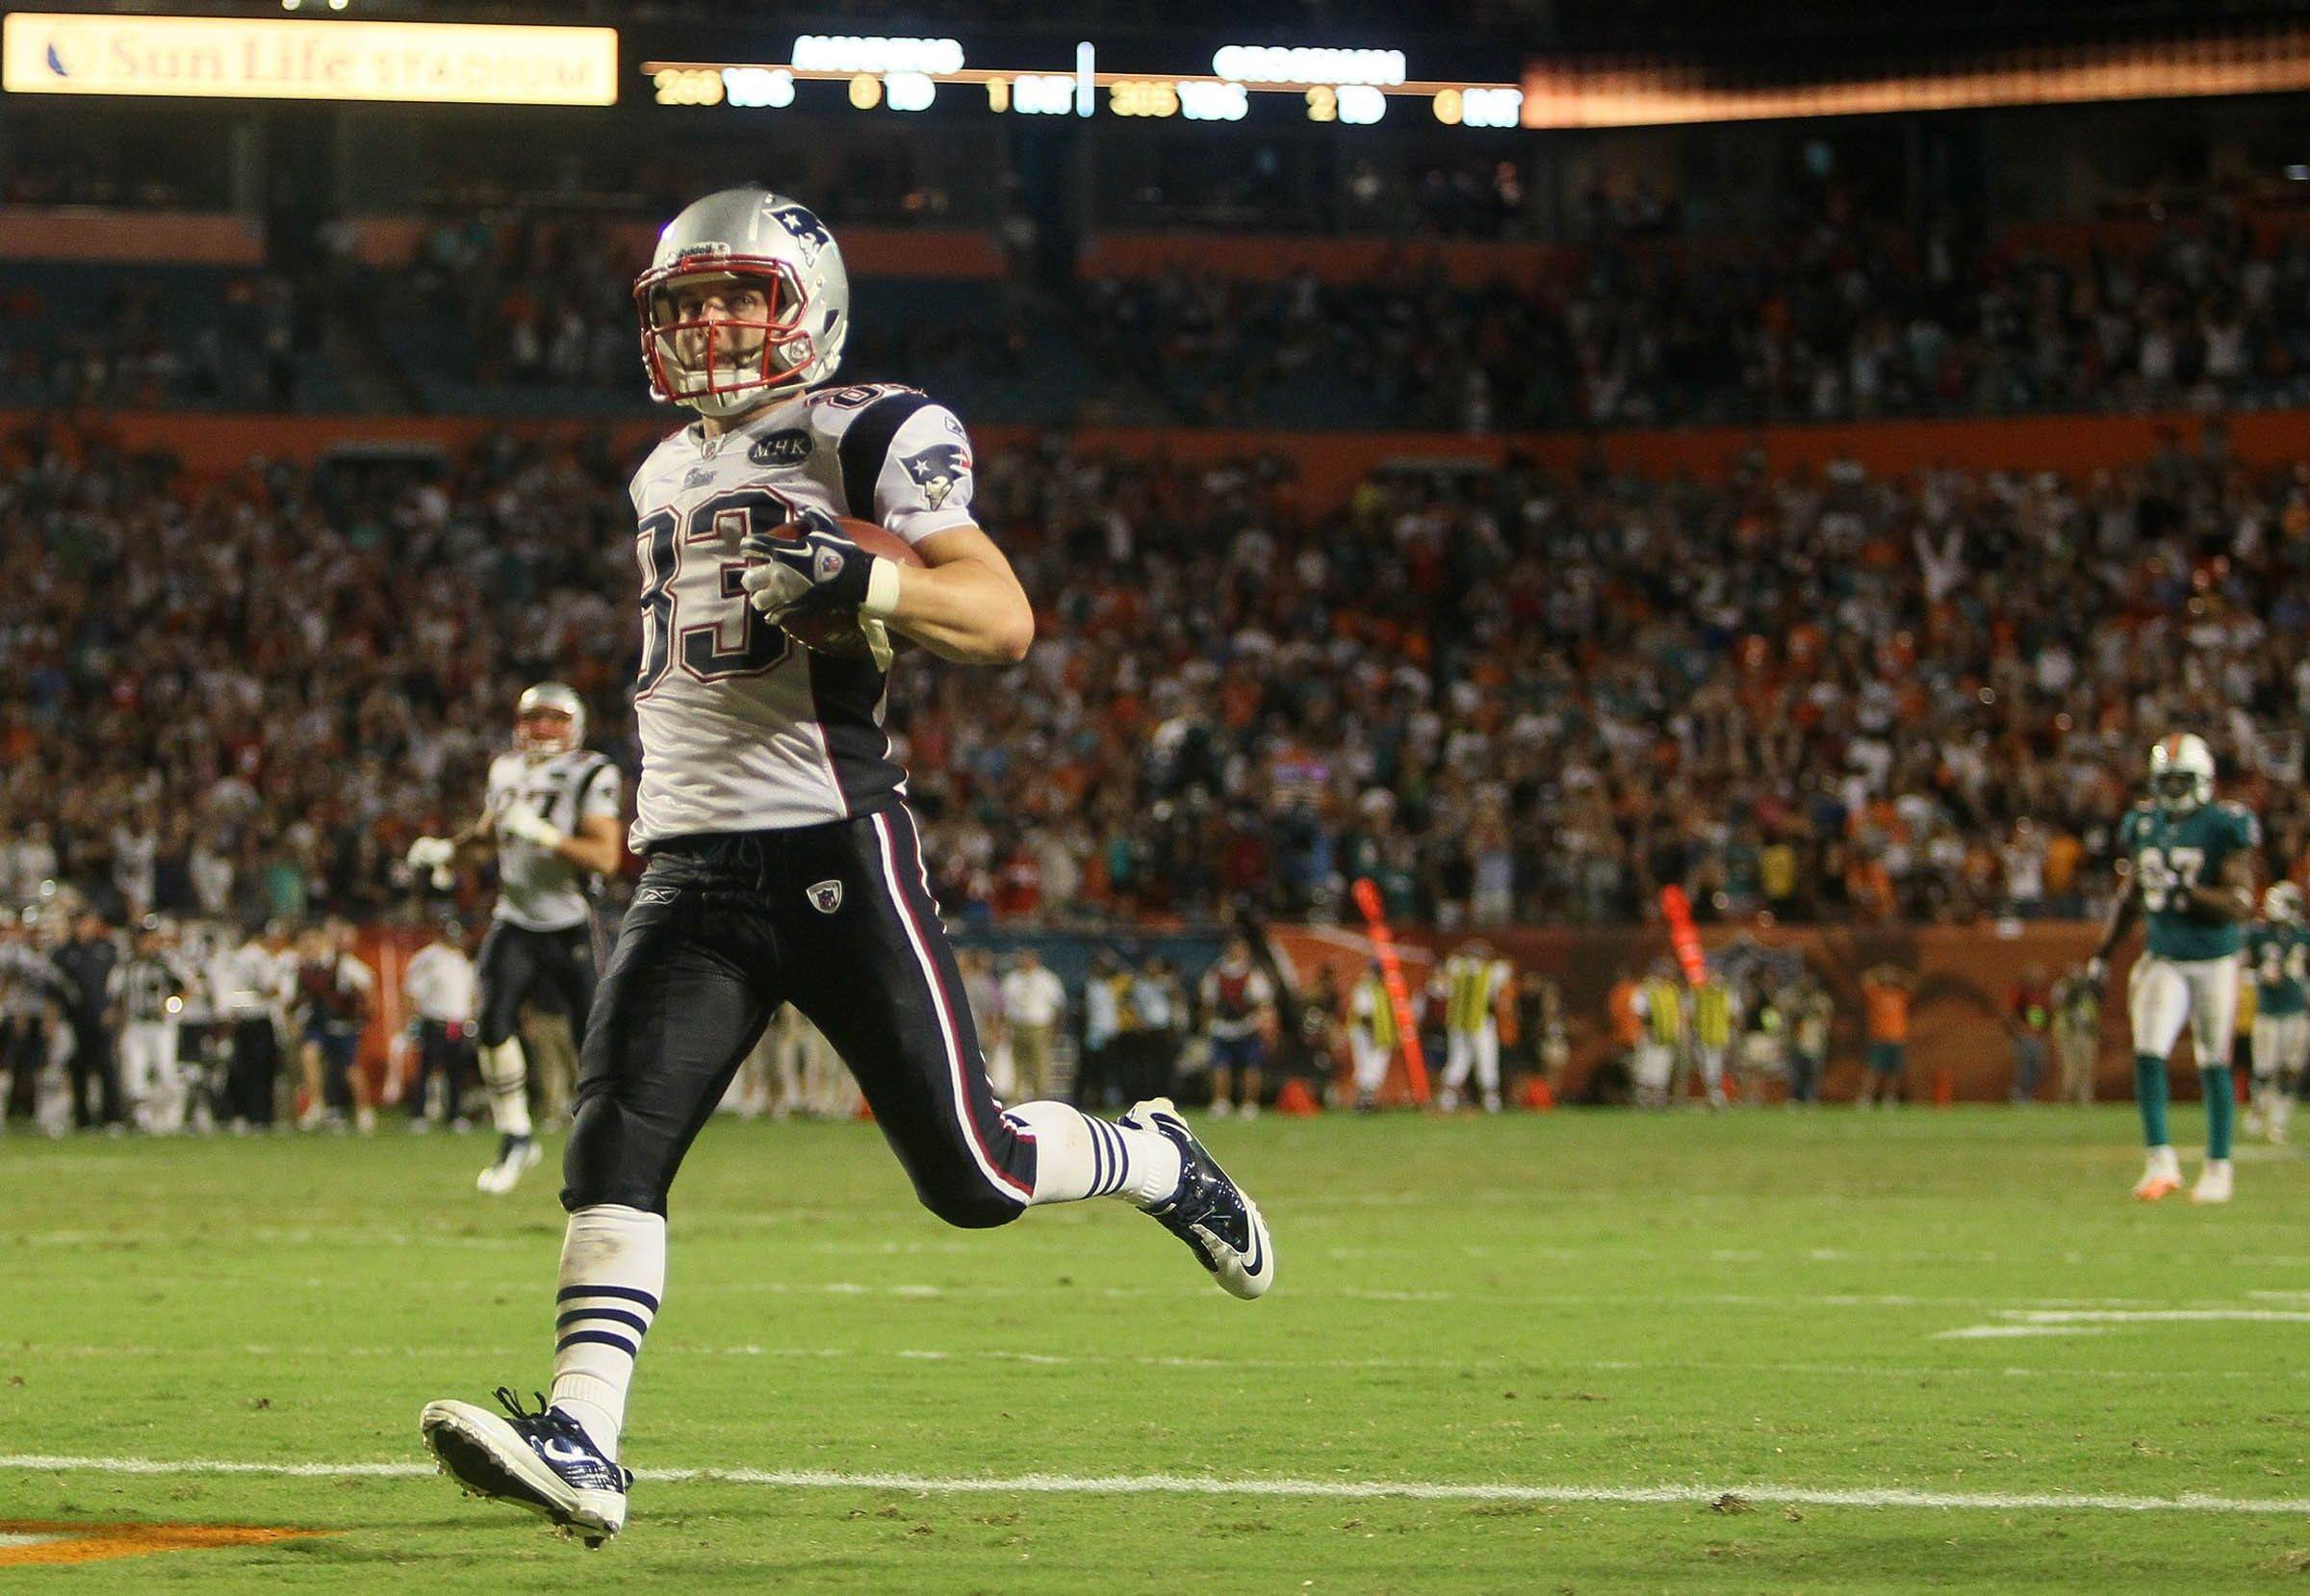 New England Patriots wide receiver Wes Welker runs for a 99-yard-touchdown in the second half Monday. The Patriots defeated the Dolphins 38-24.